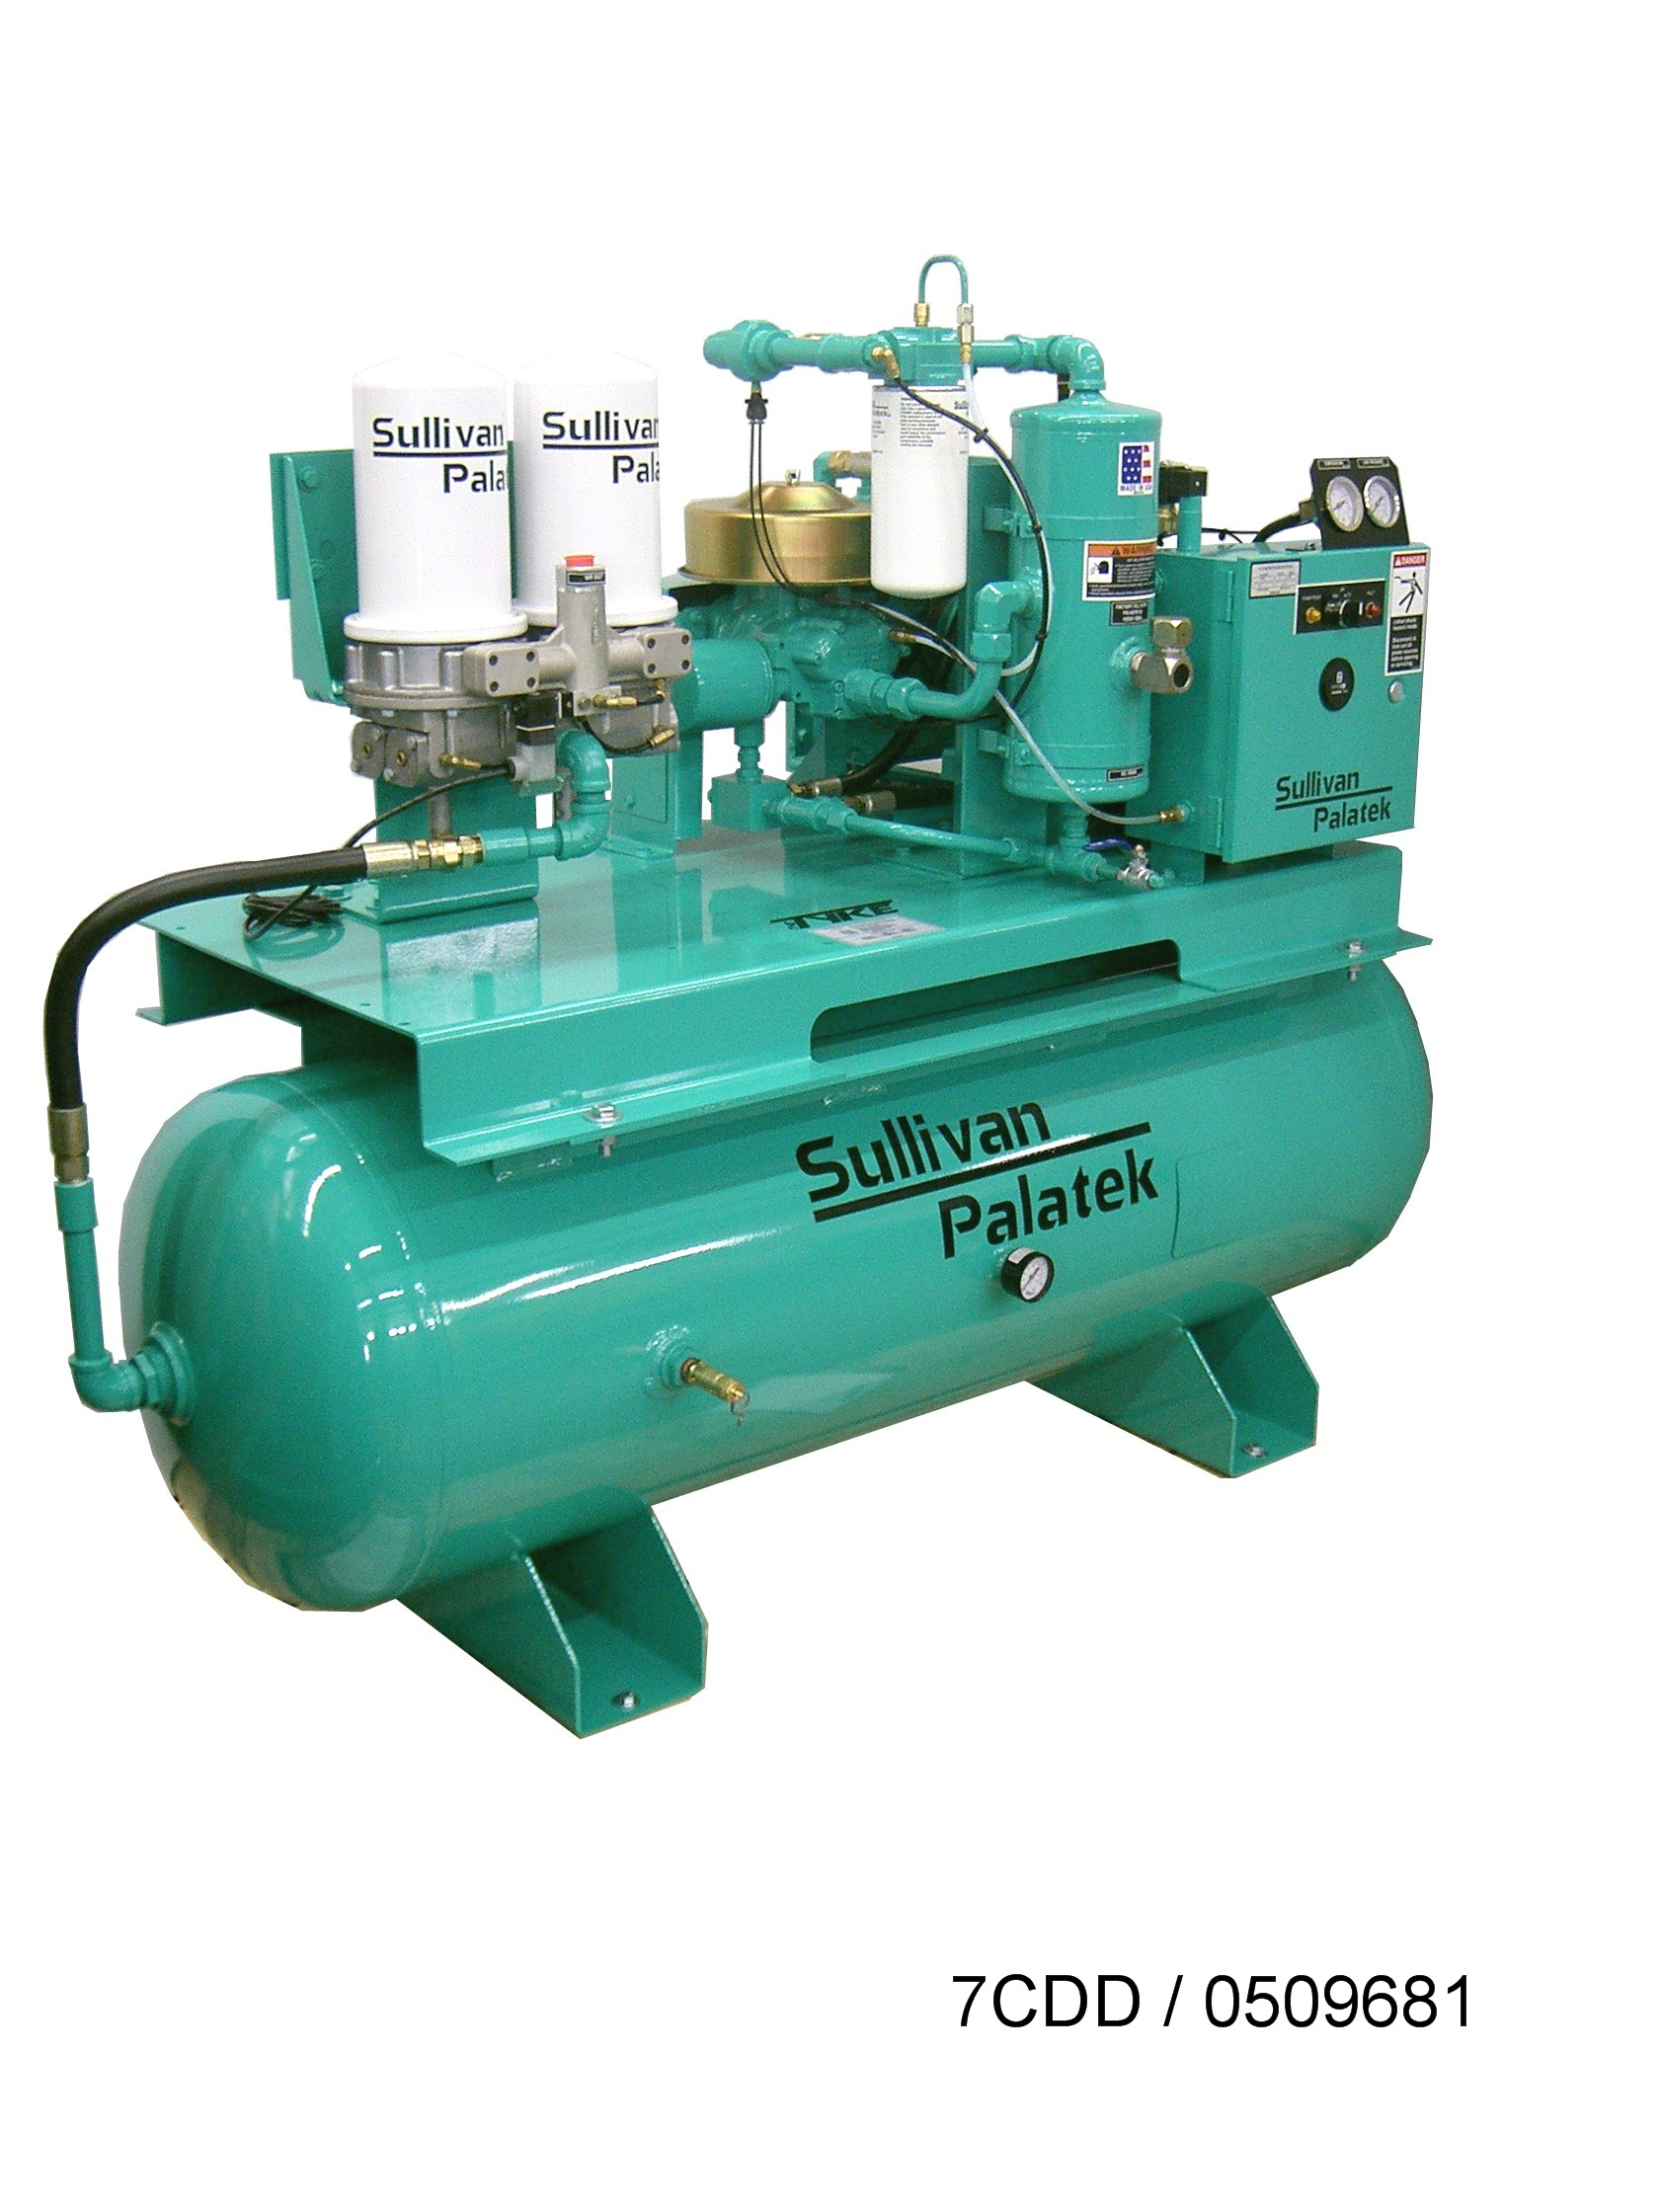 Sullivan Air Compressor